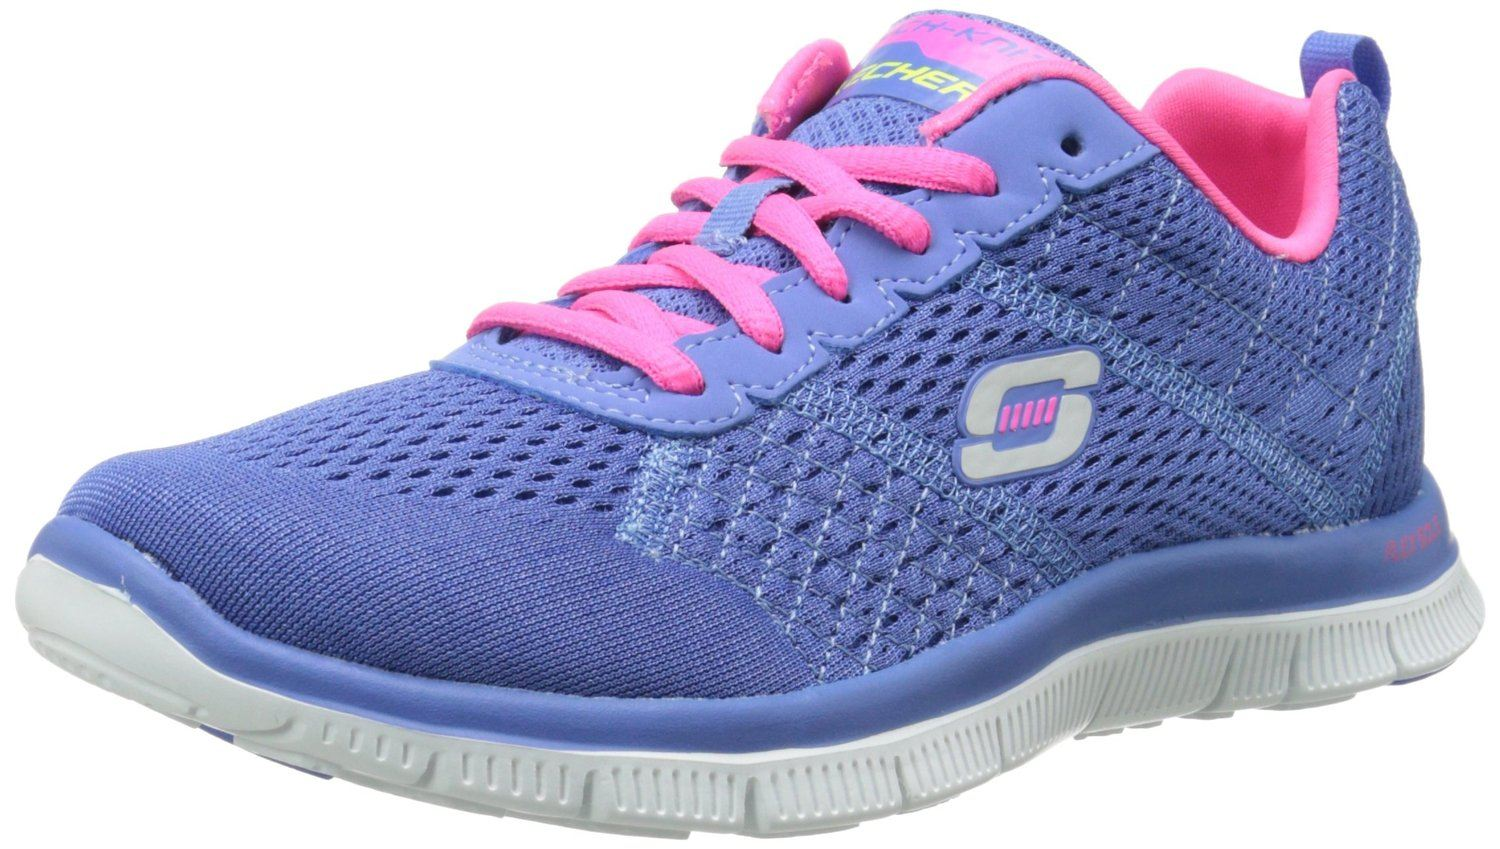 skechers flex appeal blau rosa wei damen sneckers schuhe. Black Bedroom Furniture Sets. Home Design Ideas